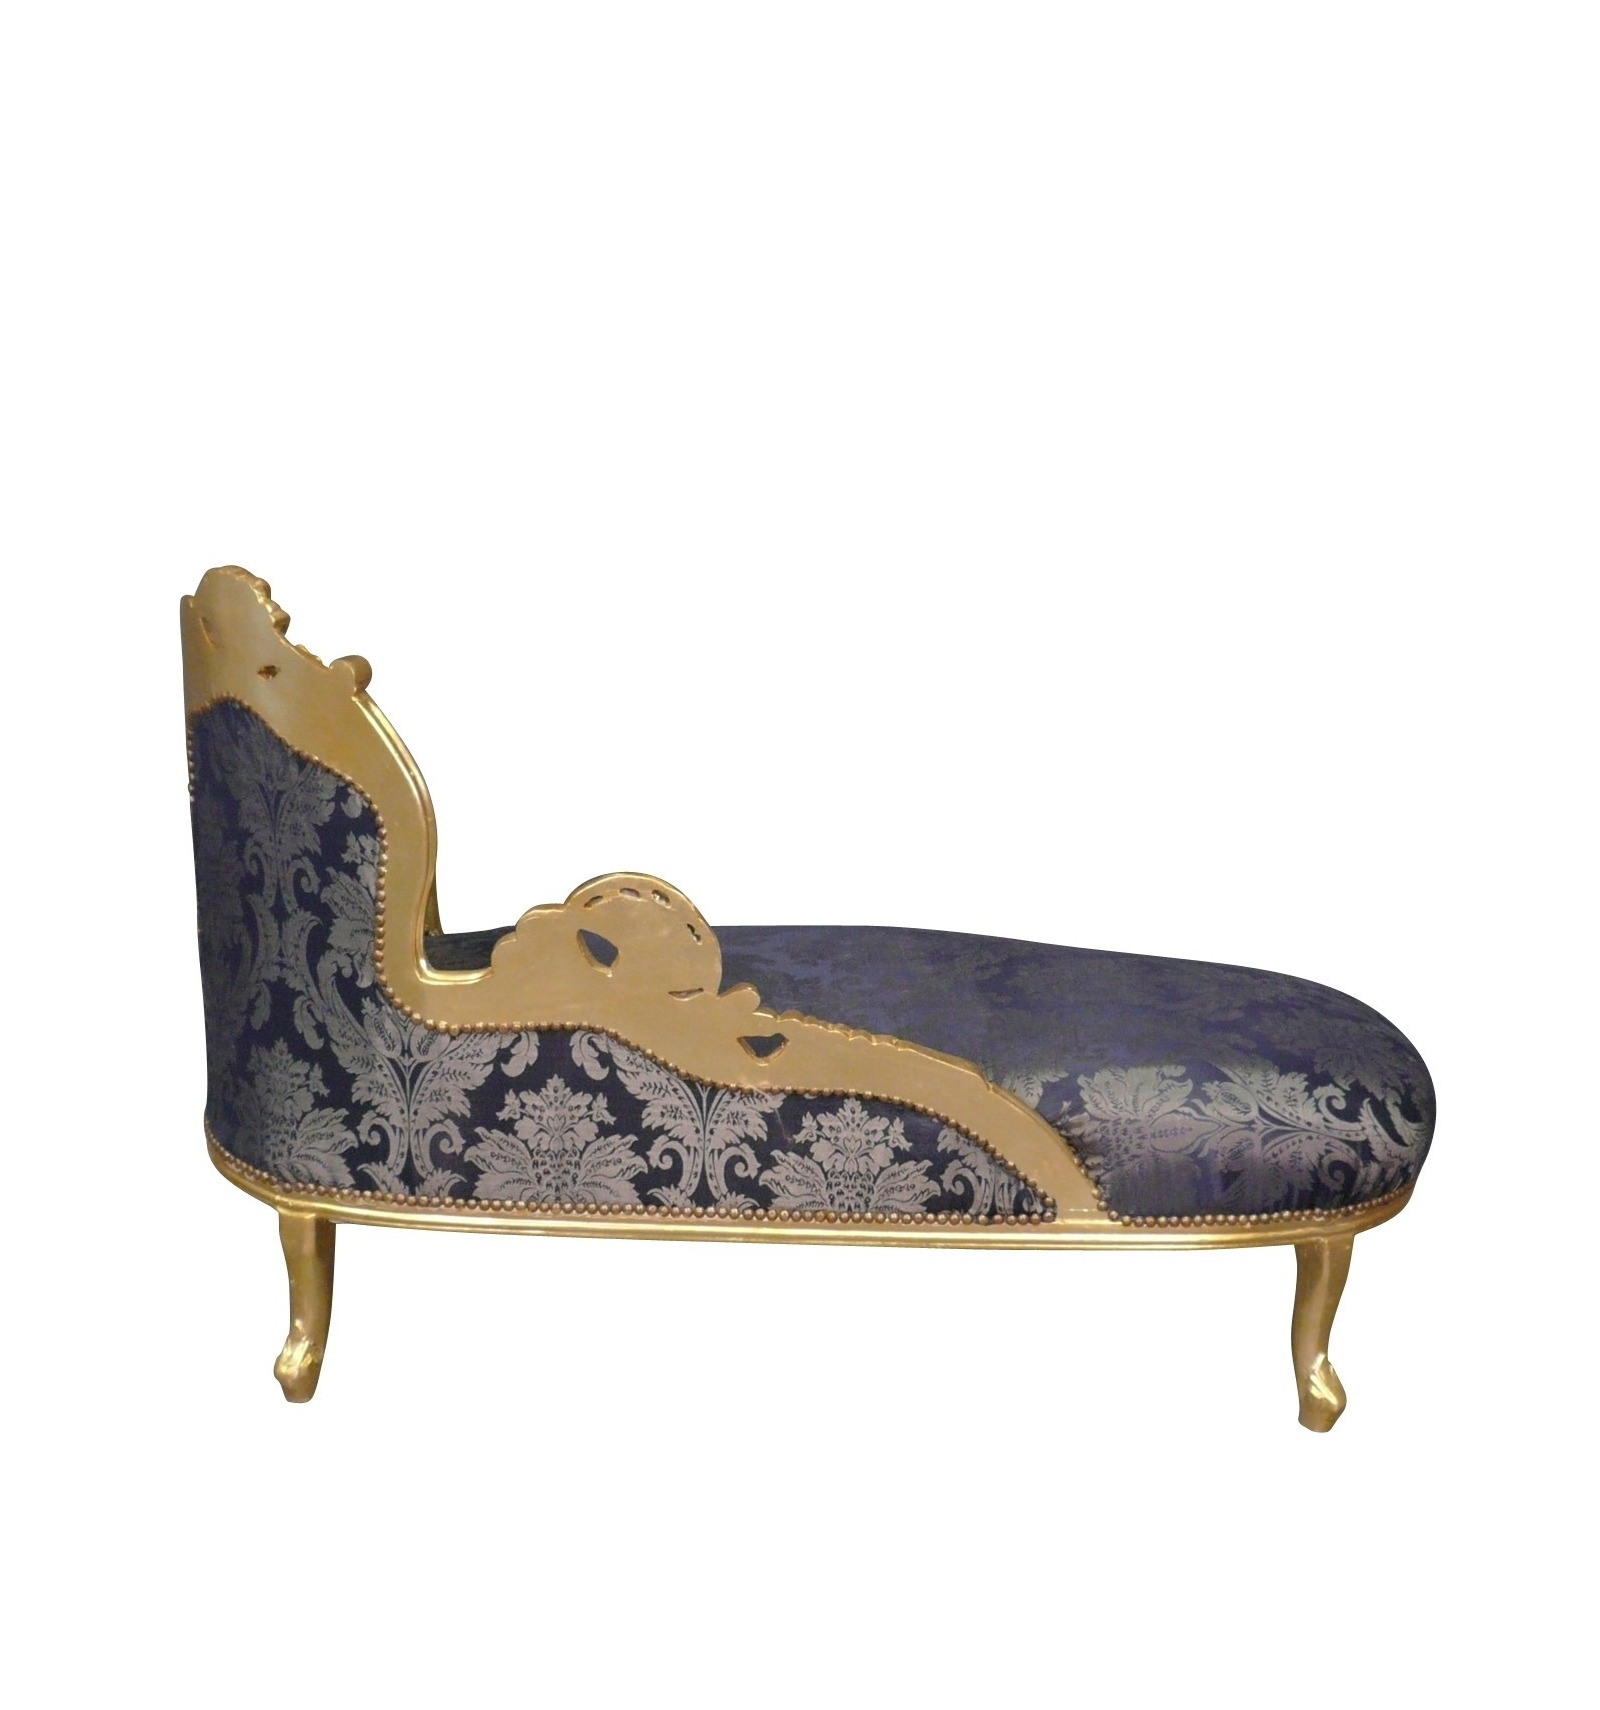 Baroque Chaise Longue Louis Xv Armchair